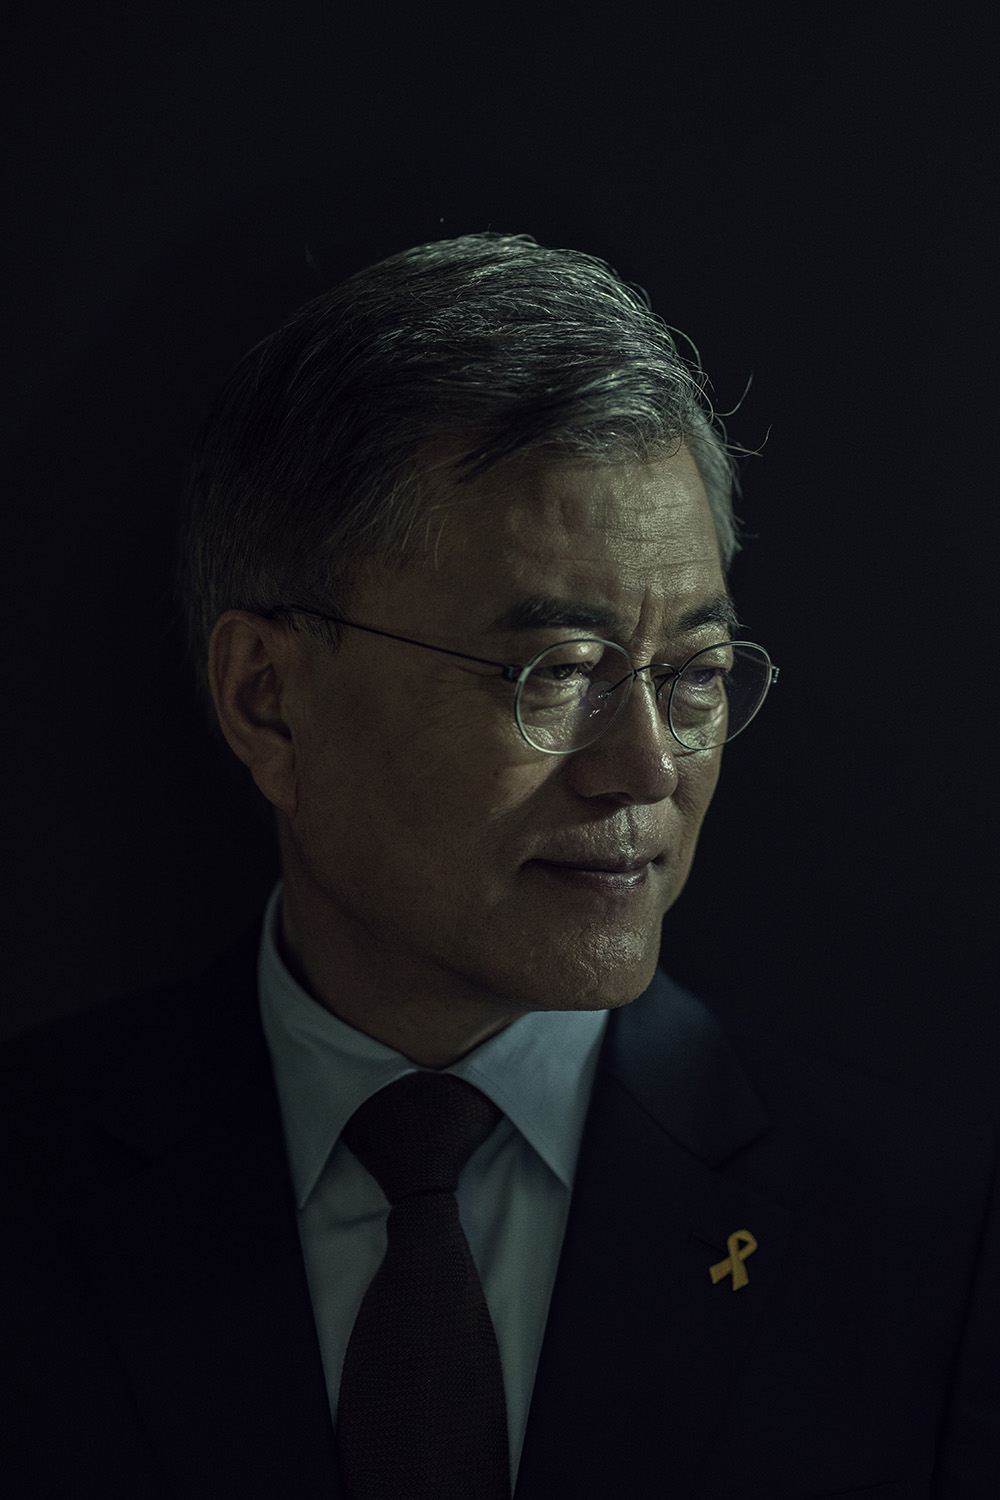 Moon Jae-in, the 2017 presidential nominee of The Democratic Party of Korea, stands for a portrait in Seoul, South Korea on April 15th, 2017. Photo by Adam Ferguson for Time